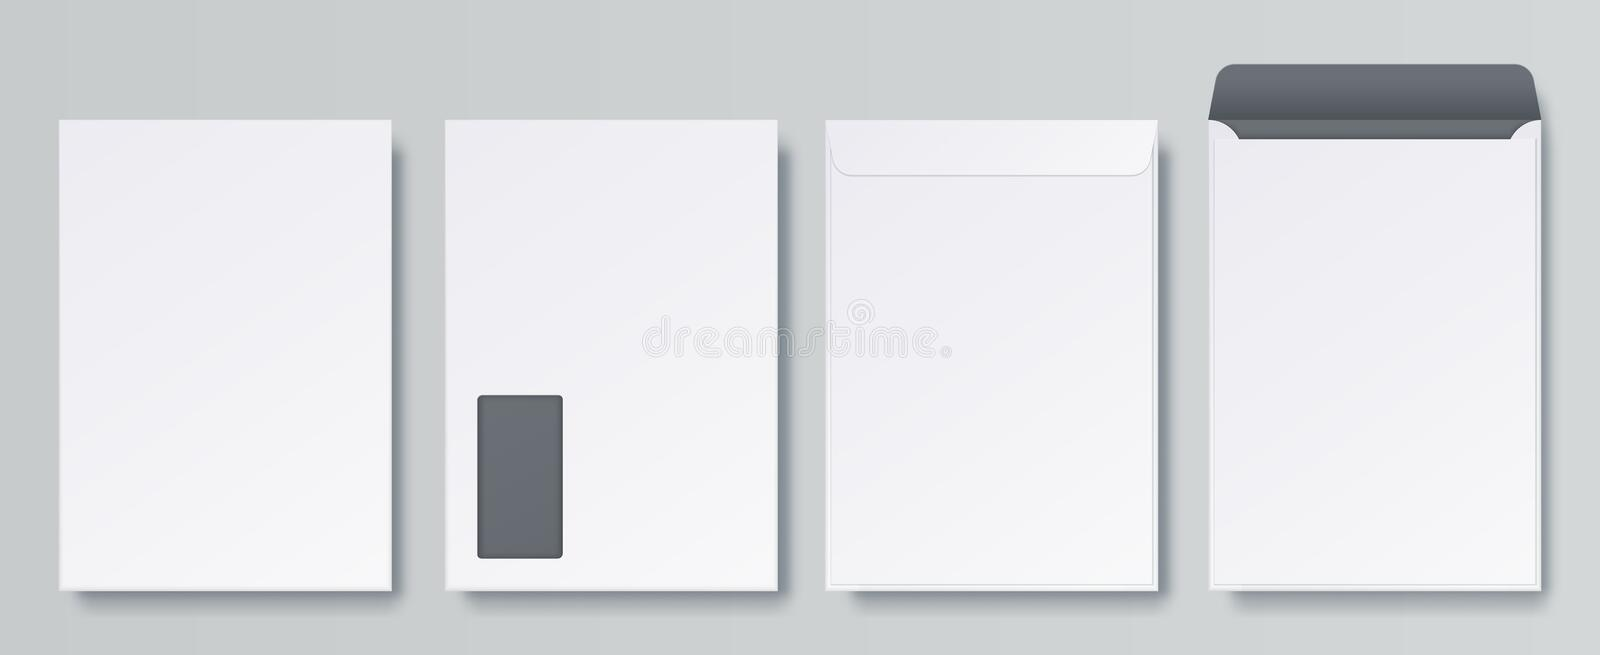 Realistic envelopes. Blank close and open letter, C4 A4 business mockup template, isolated front and back views. Vector stock illustration